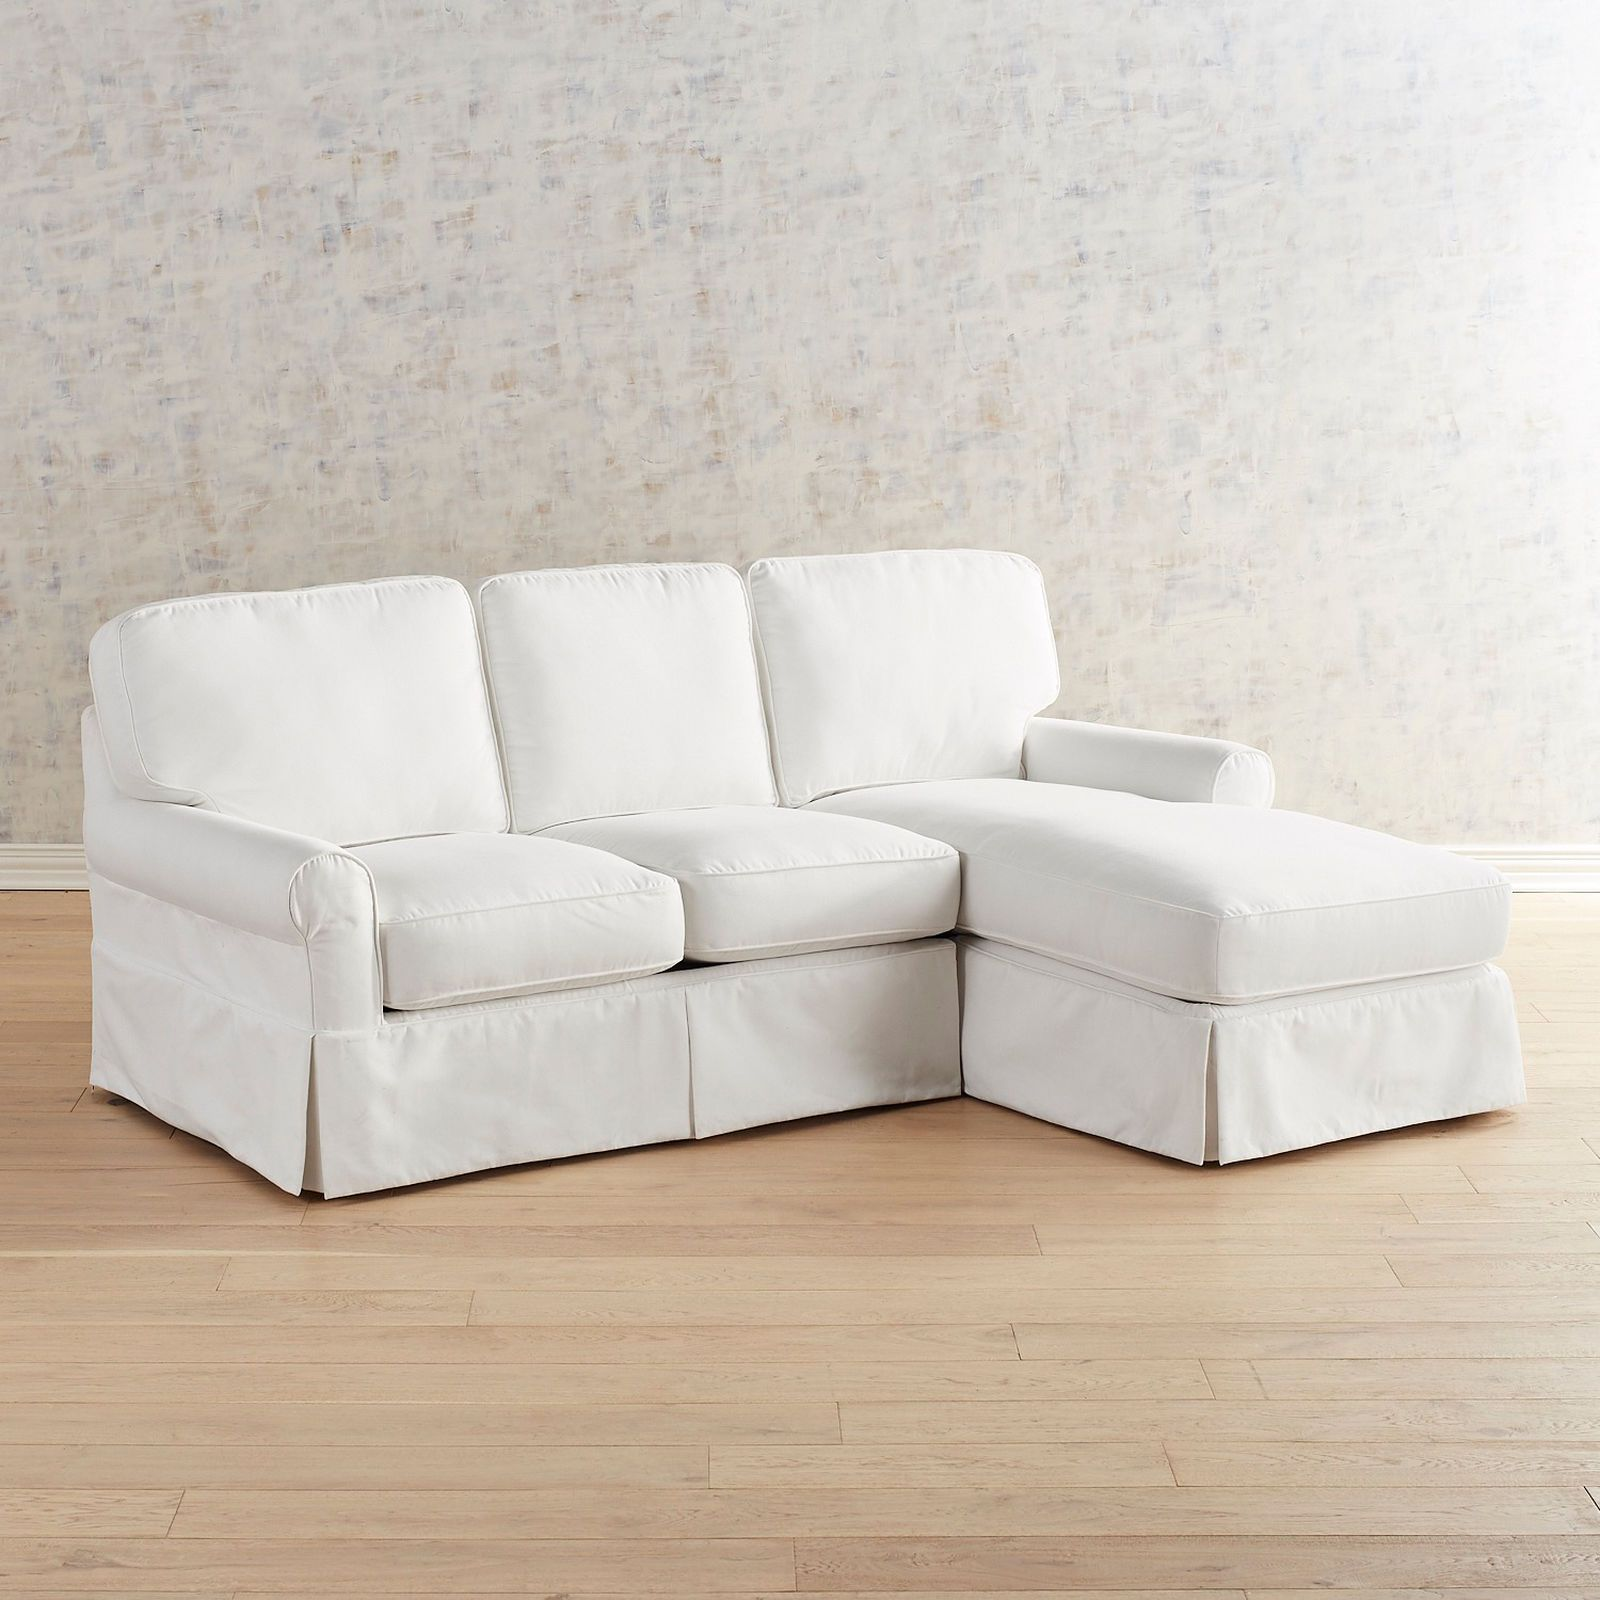 Lia Pierformance White Slipcovered 2 Piece Right Arm Chaise Sectional Pier 1 Couch Covers Slipcovers Sectional Sofa Slipcovers Slipcovered Sofa Living Room